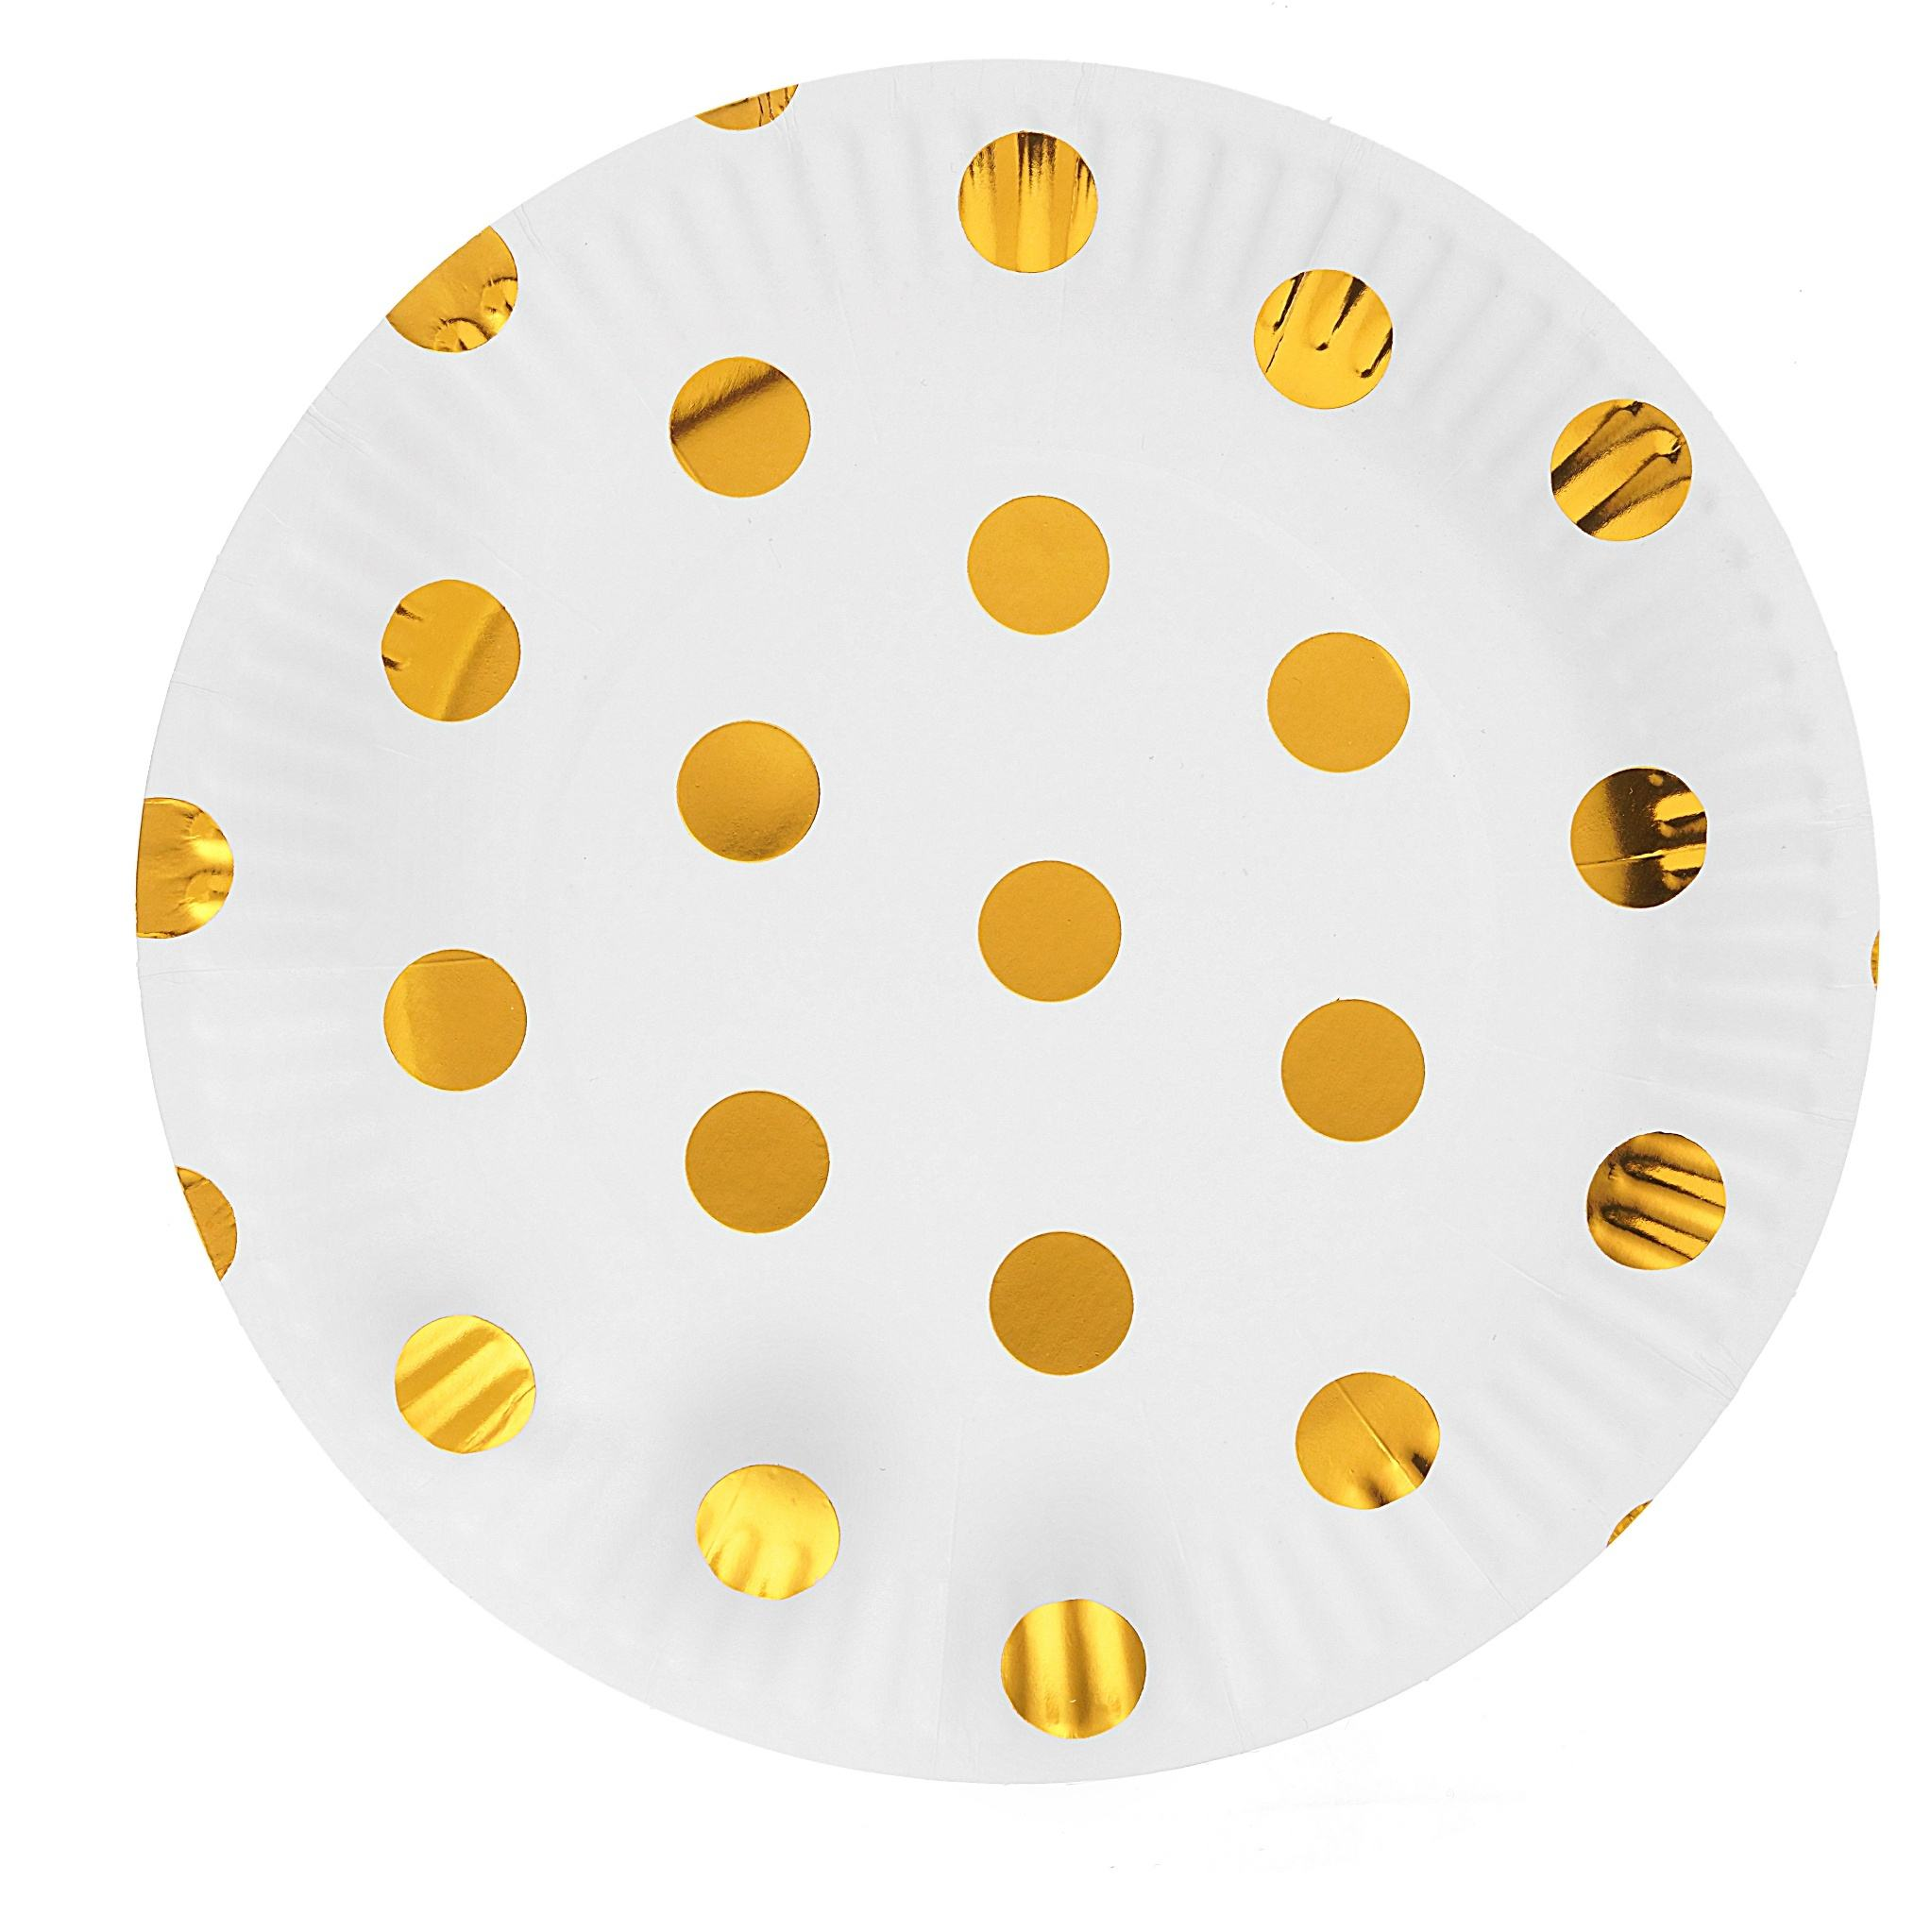 Popular thickened round polka dot party tea party paper plates party cups and plates paper fox paper plates and napkins for par